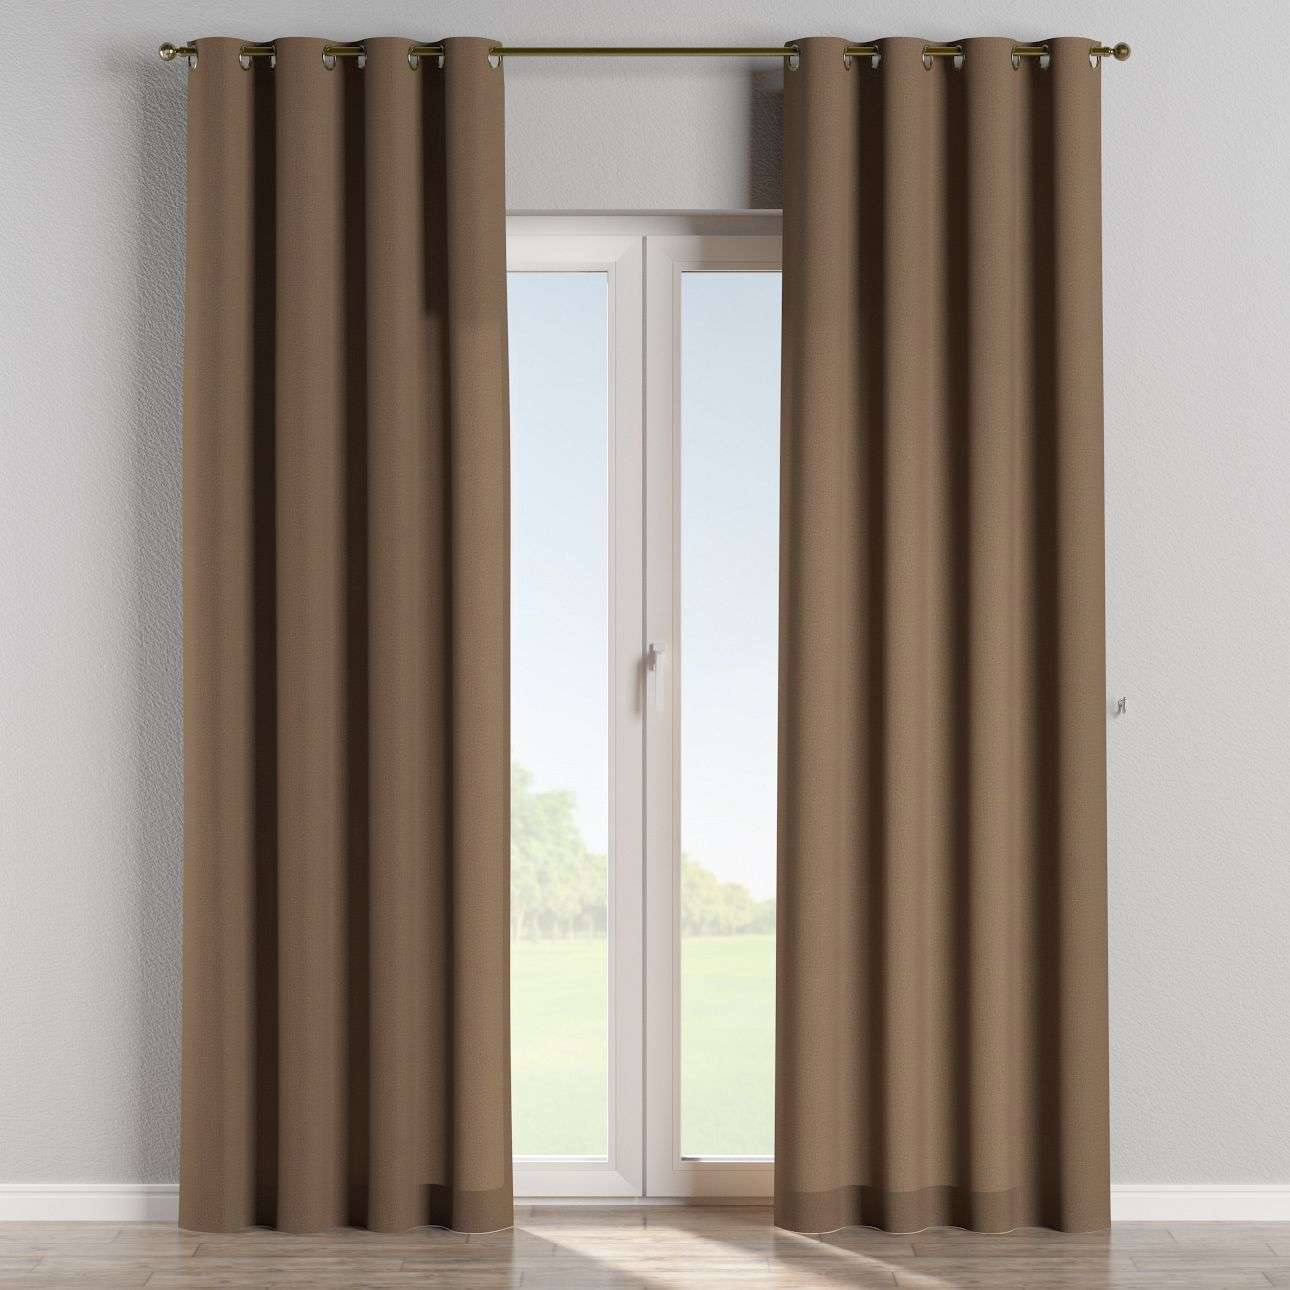 Eyelet curtains 130 x 260 cm (51 x 102 inch) in collection Edinburgh, fabric: 115-85